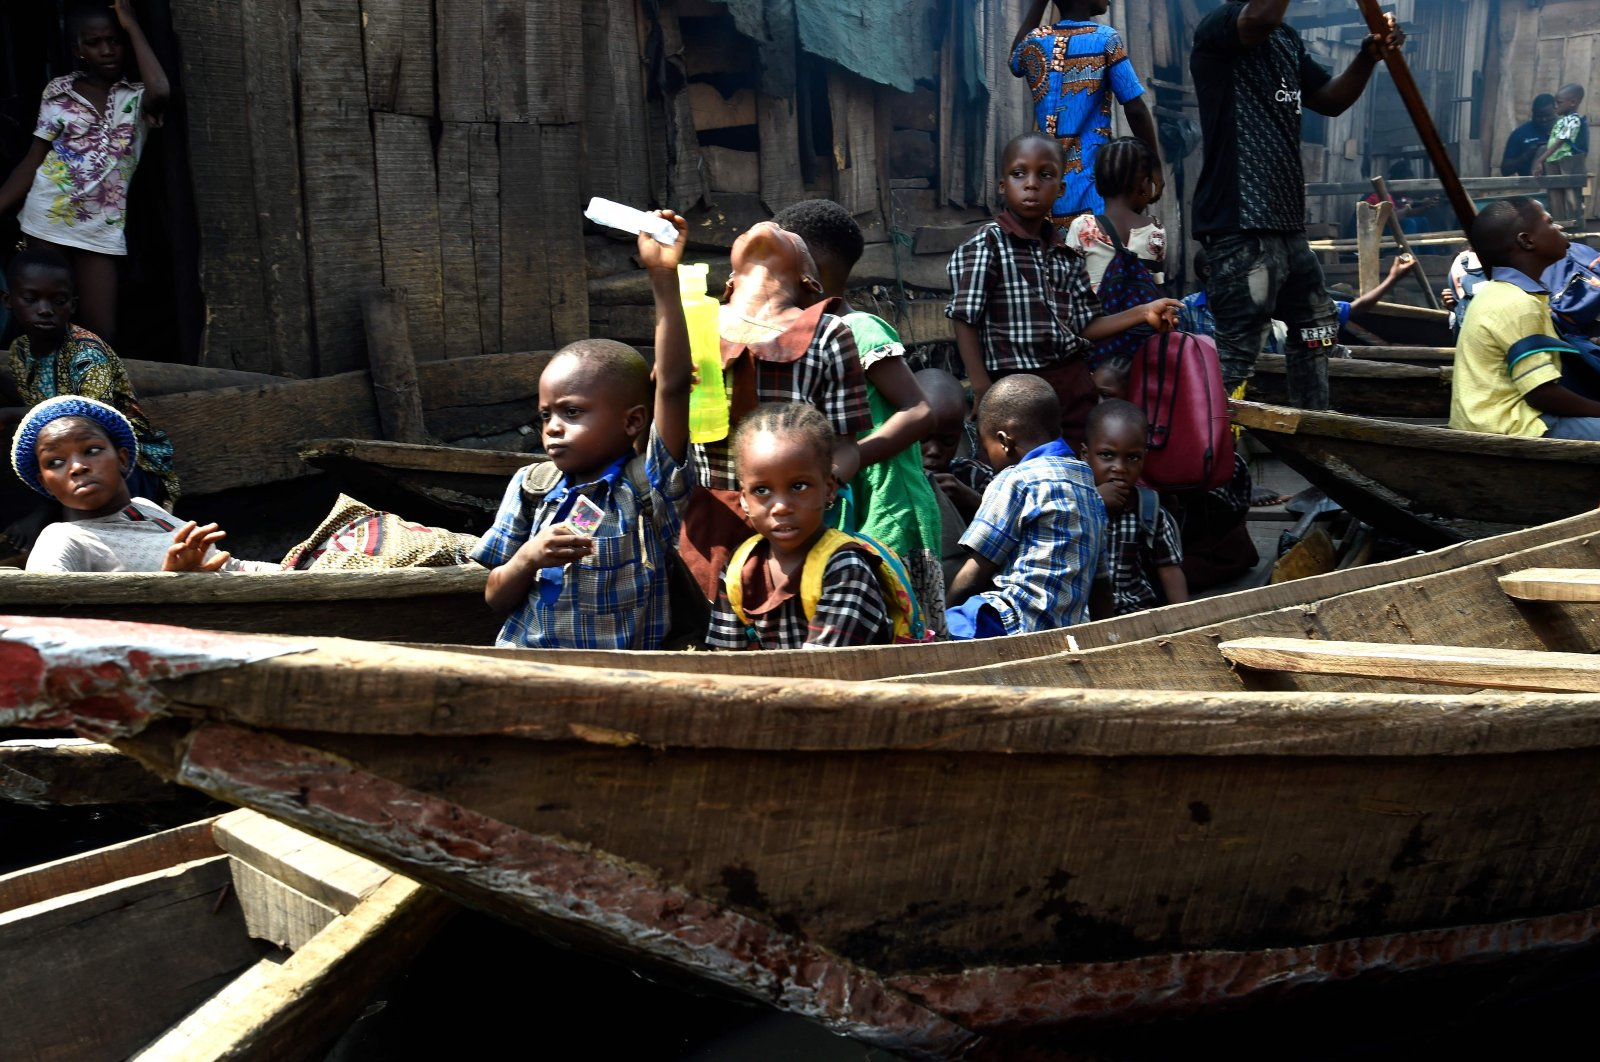 Pupils sit in canoe heading home in a makeshift home in the Makoko riverine slum settlement in Lagos, Nigeria, Nov. 27, 2020. (AFP photo)